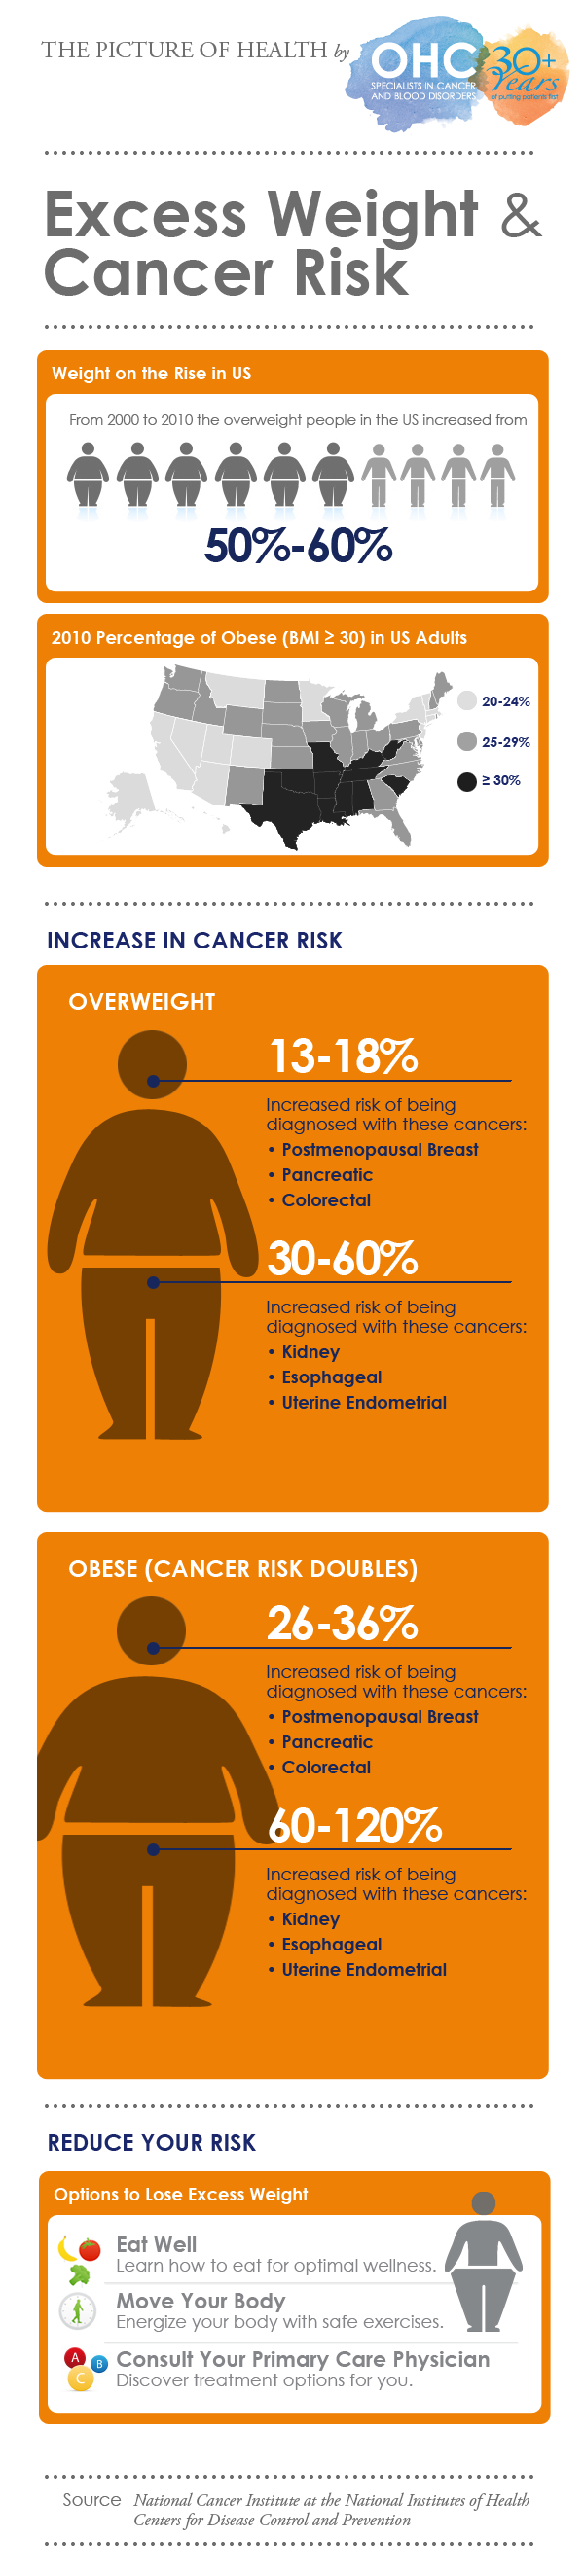 OHC Infographic - Excess Weight Cancer Risk